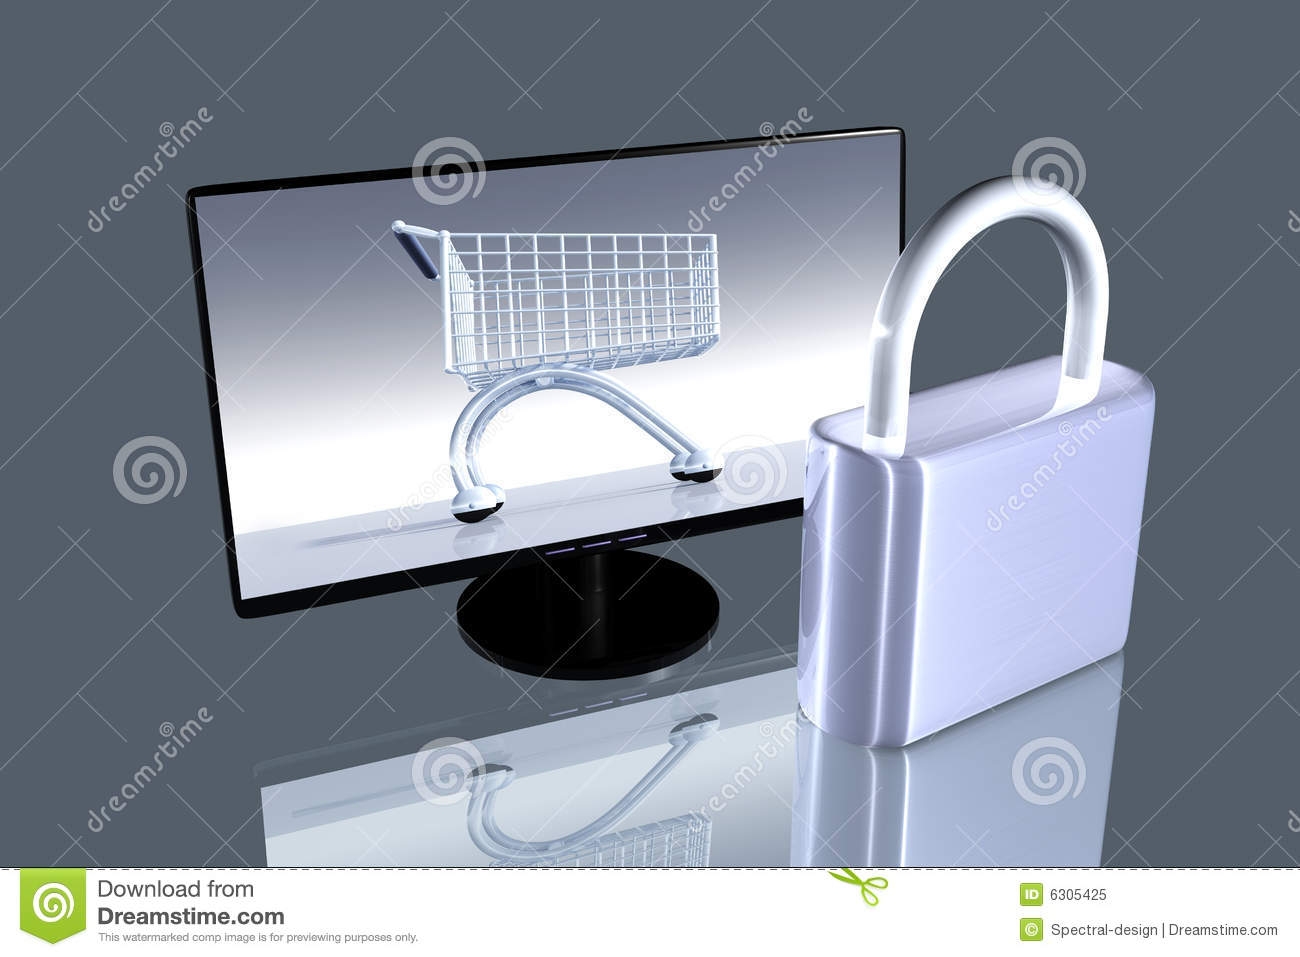 Secure Online Shopping Royalty Free Stock Photo - Image: 6305425